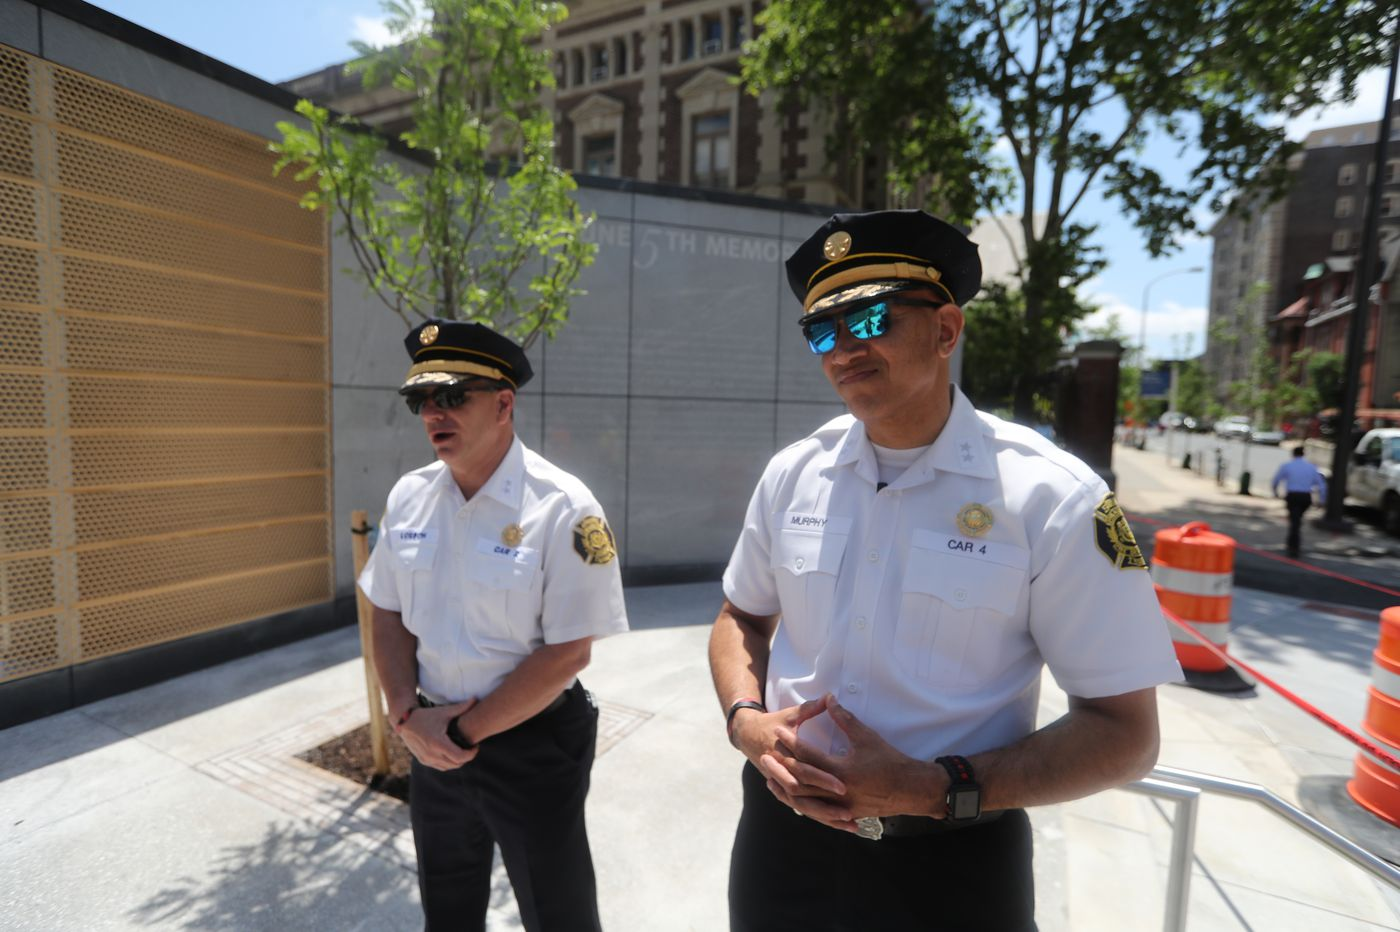 'Some disasters stand out.' Firefighters remember the Salvation Army collapse   Ronnie Polaneczky